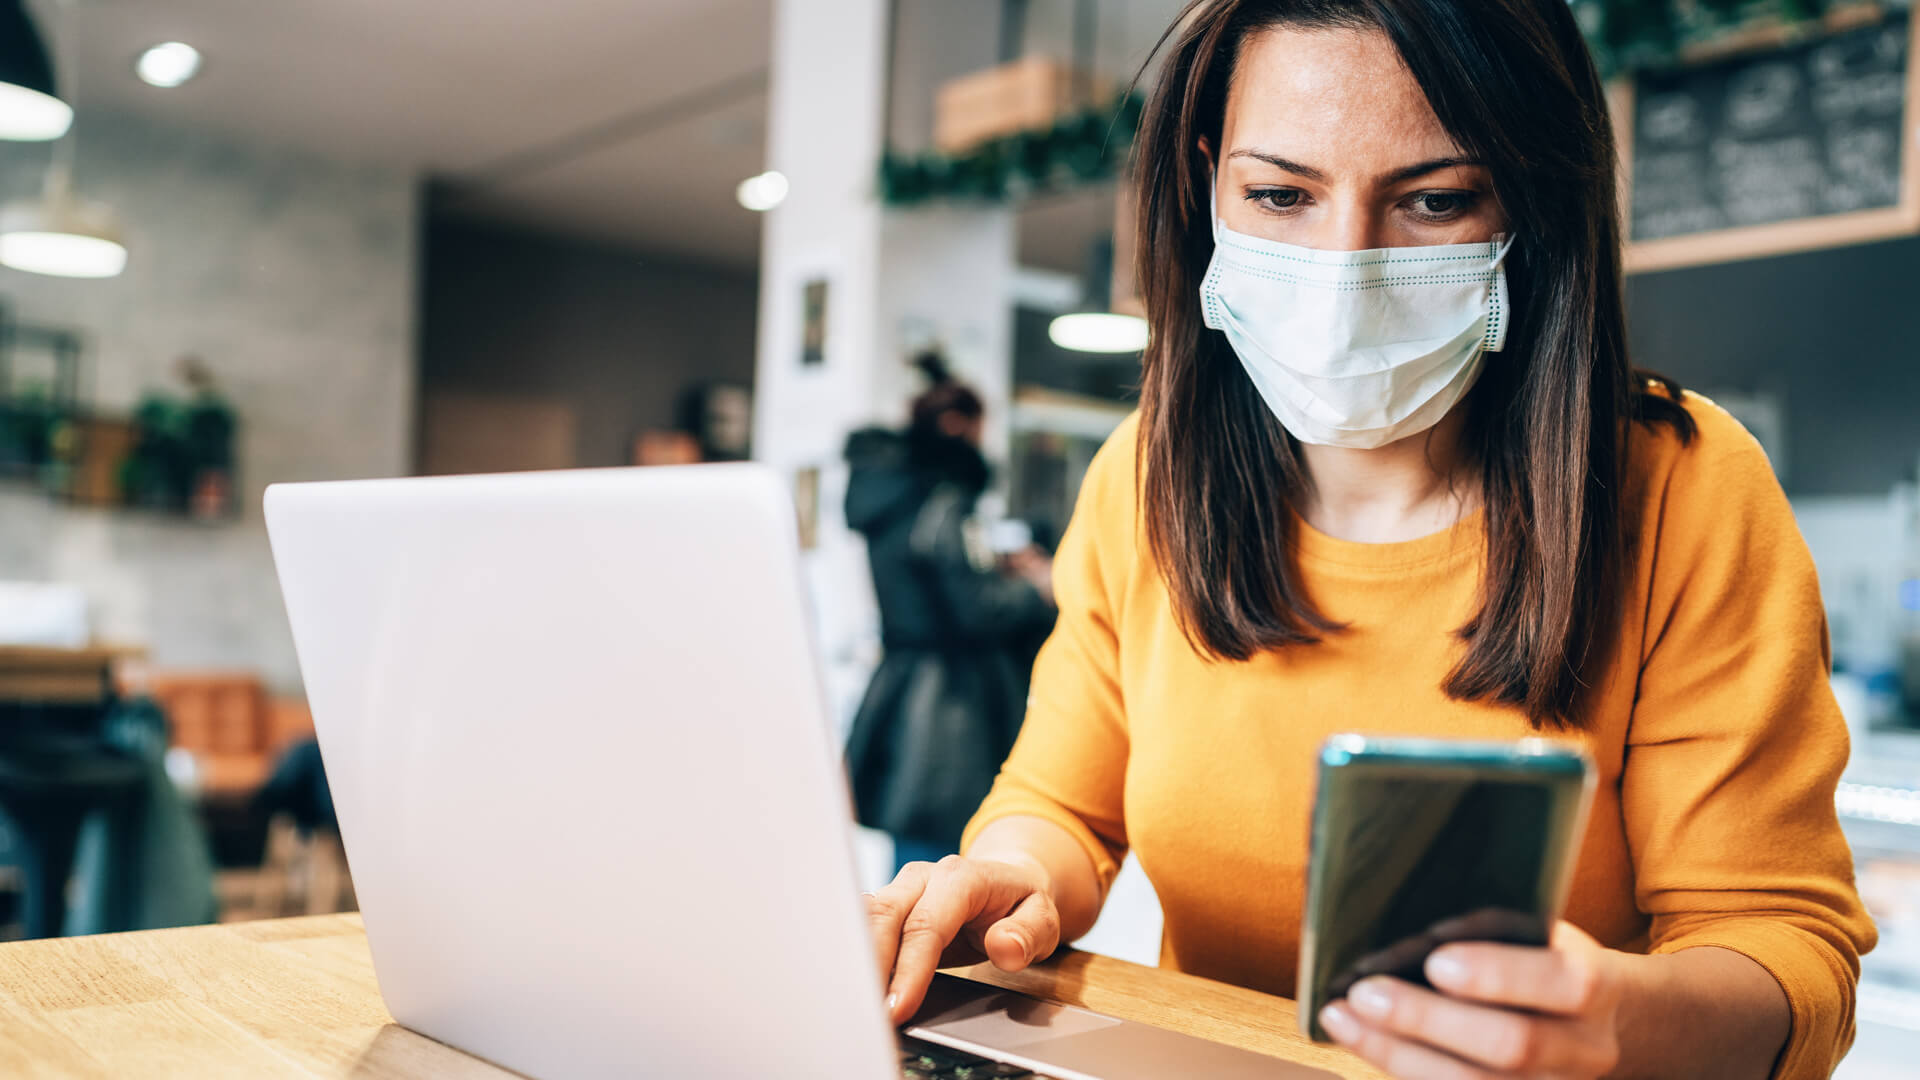 Portrait of young woman using laptop at cafe wearing  face protective mask to prevent infectious diseases.